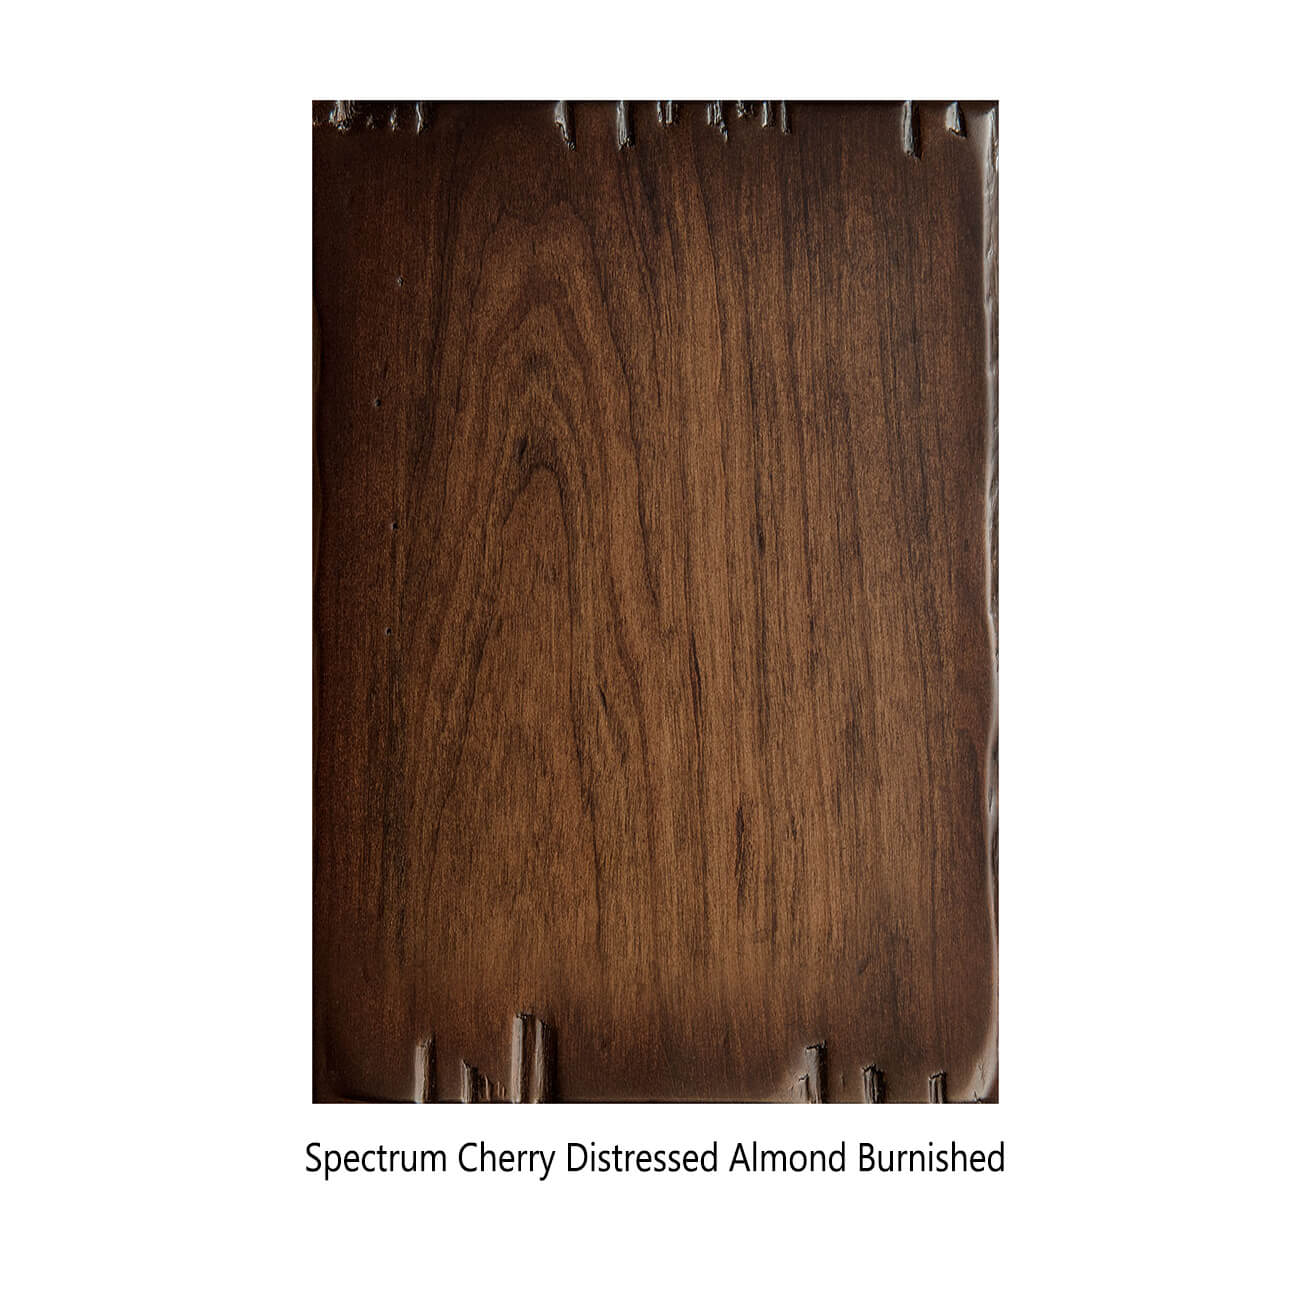 spectrum-cherry-distressed-almond-burnished-copy.jpg